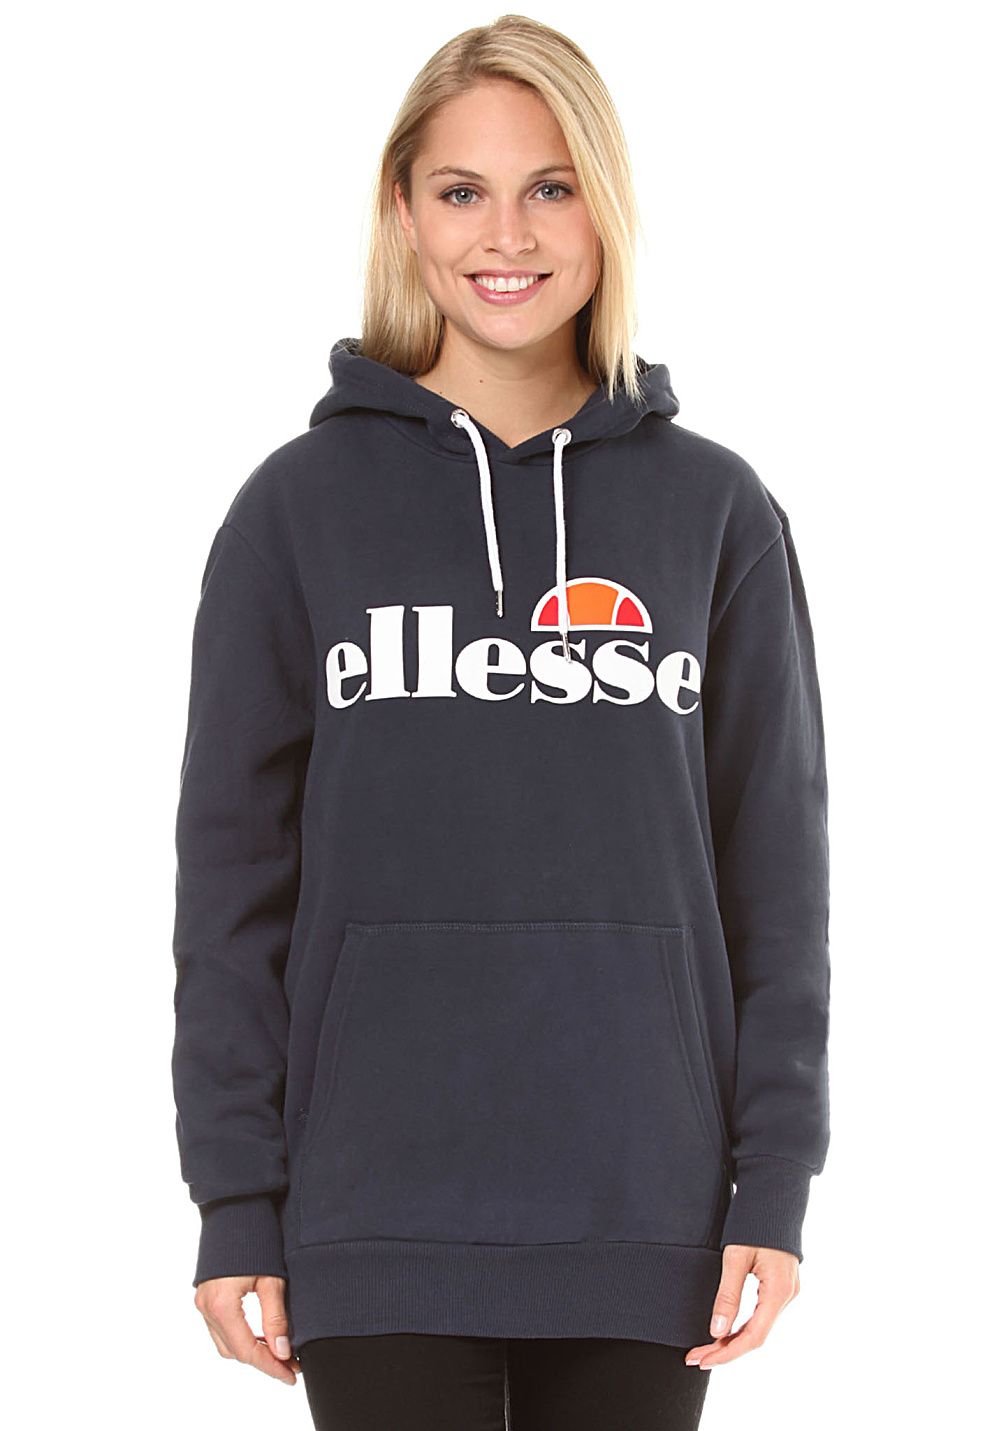 e183b2eb ELLESSE Torices - Hooded Sweatshirt for Women - Blue - Planet Sports